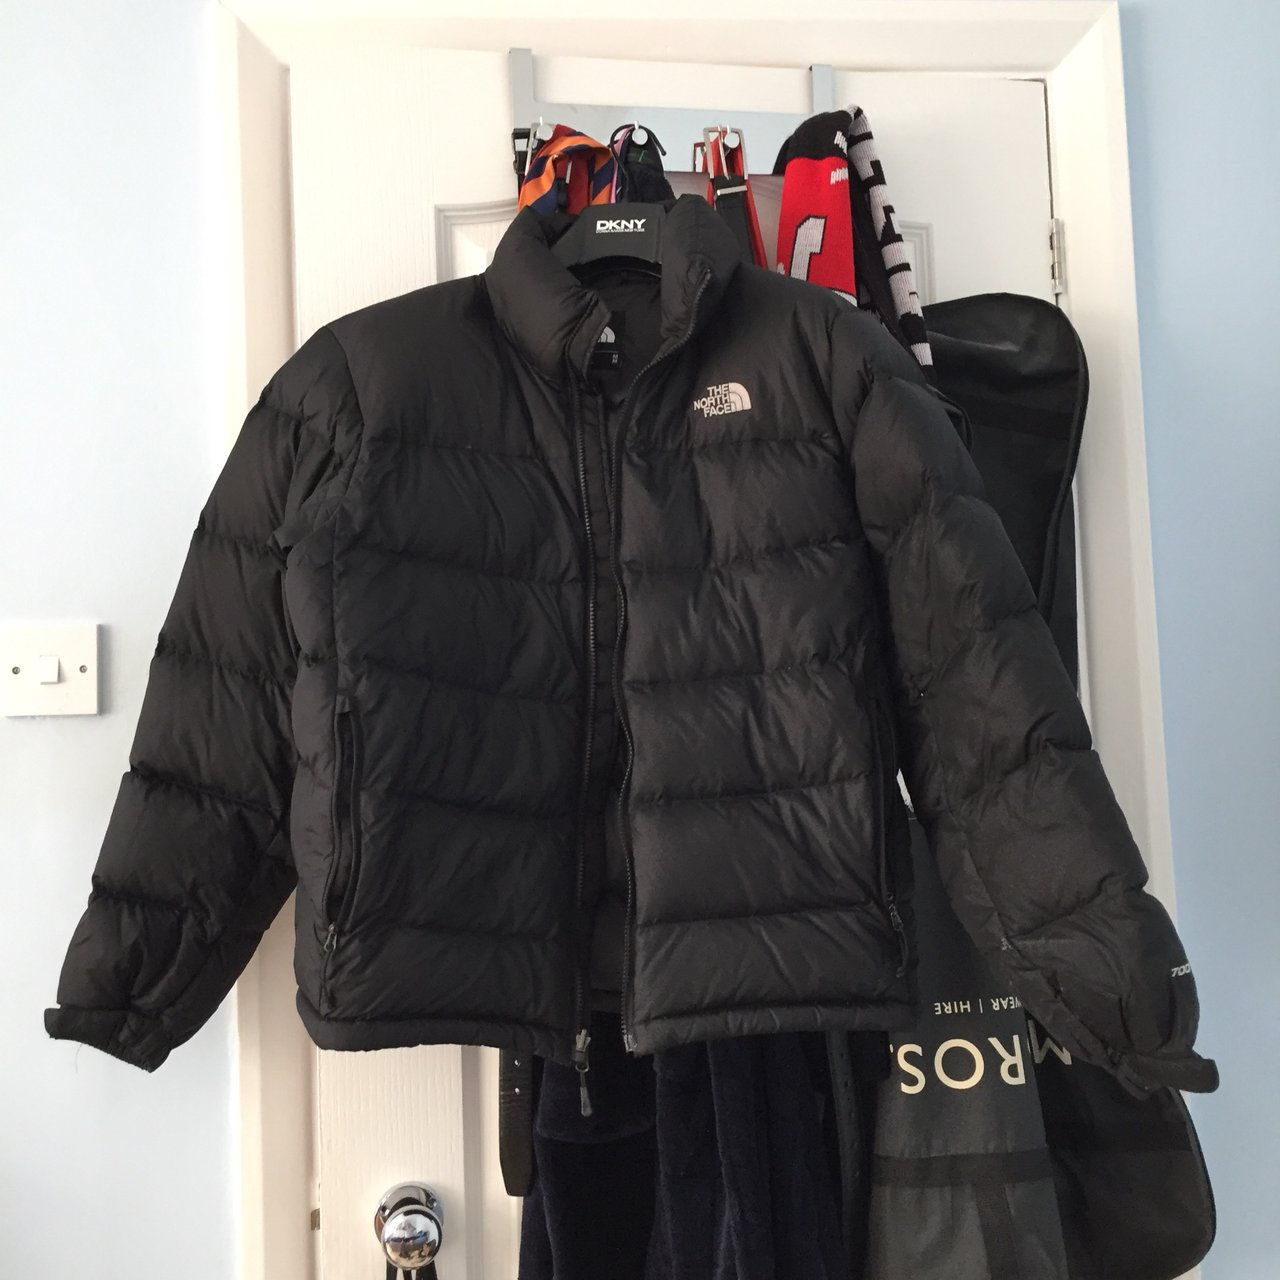 2a8b4eb7d5 North face puffer jacket Worn a couple times Great but can - Depop